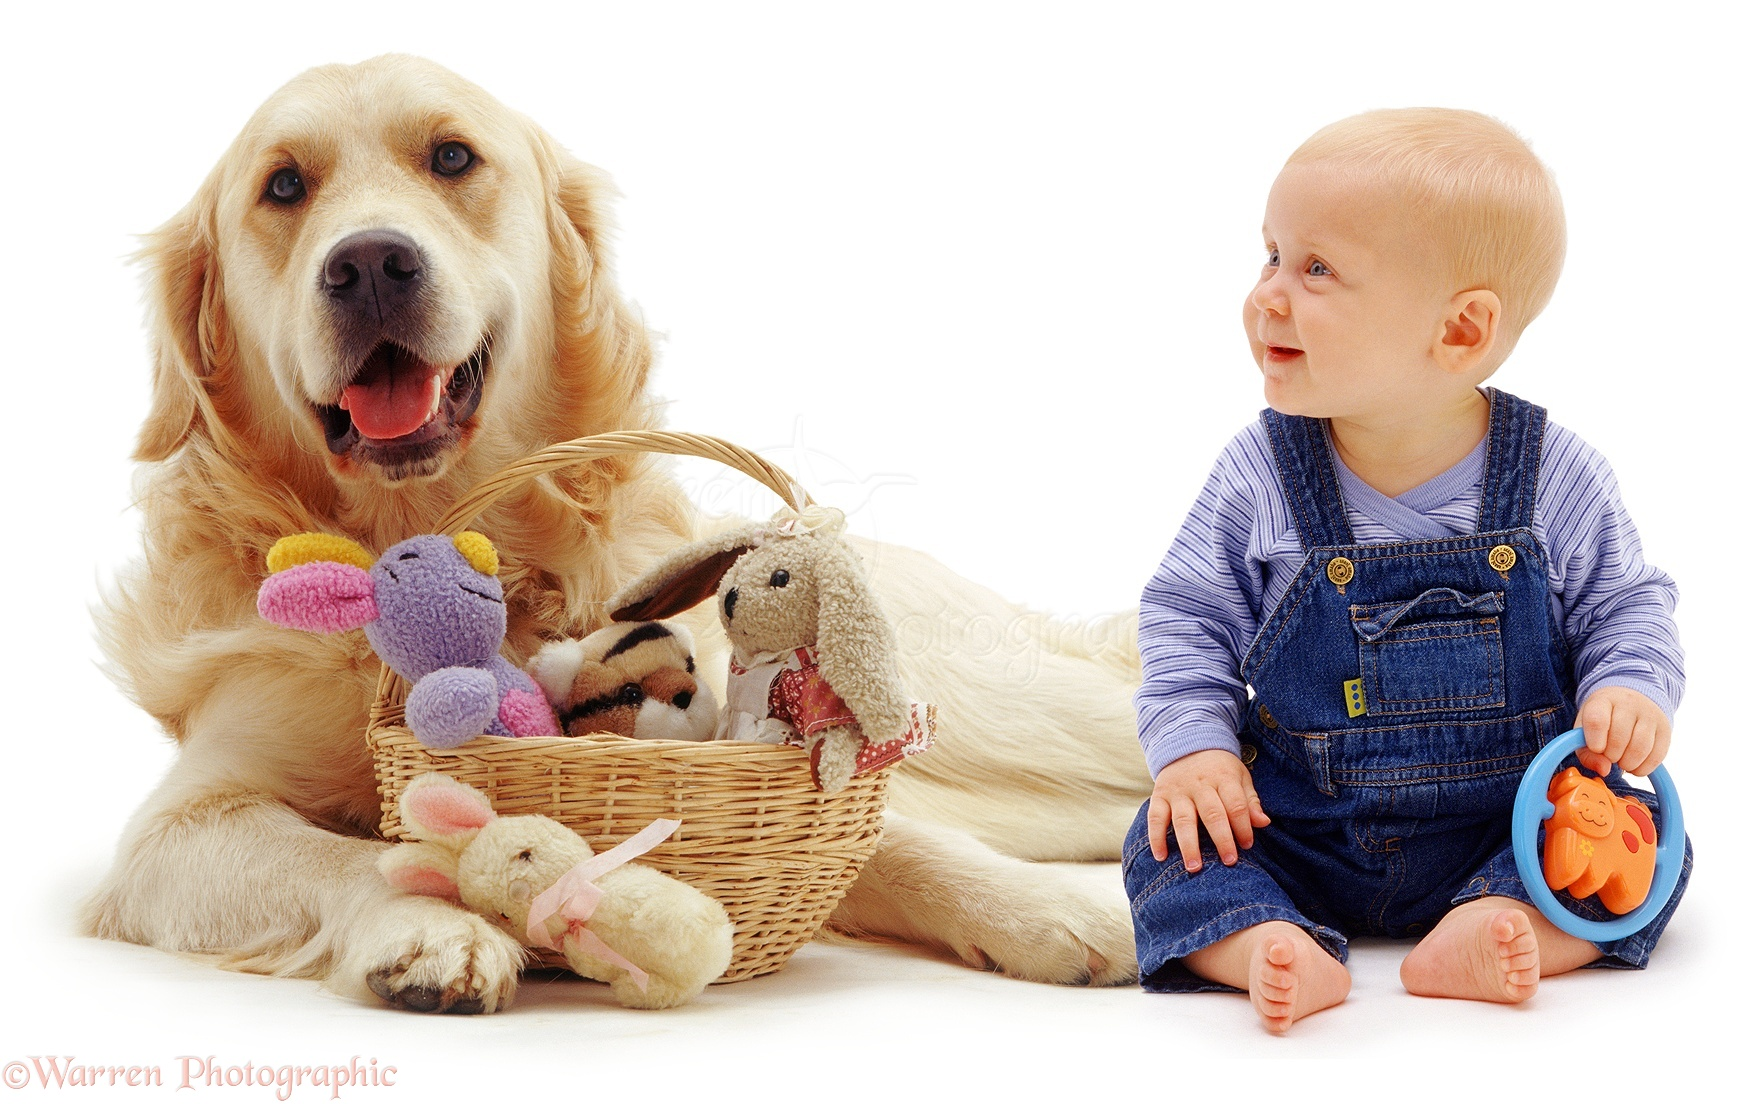 6 Month Old Baby Toys Baby And Retriever With Toys Photo Wp03520